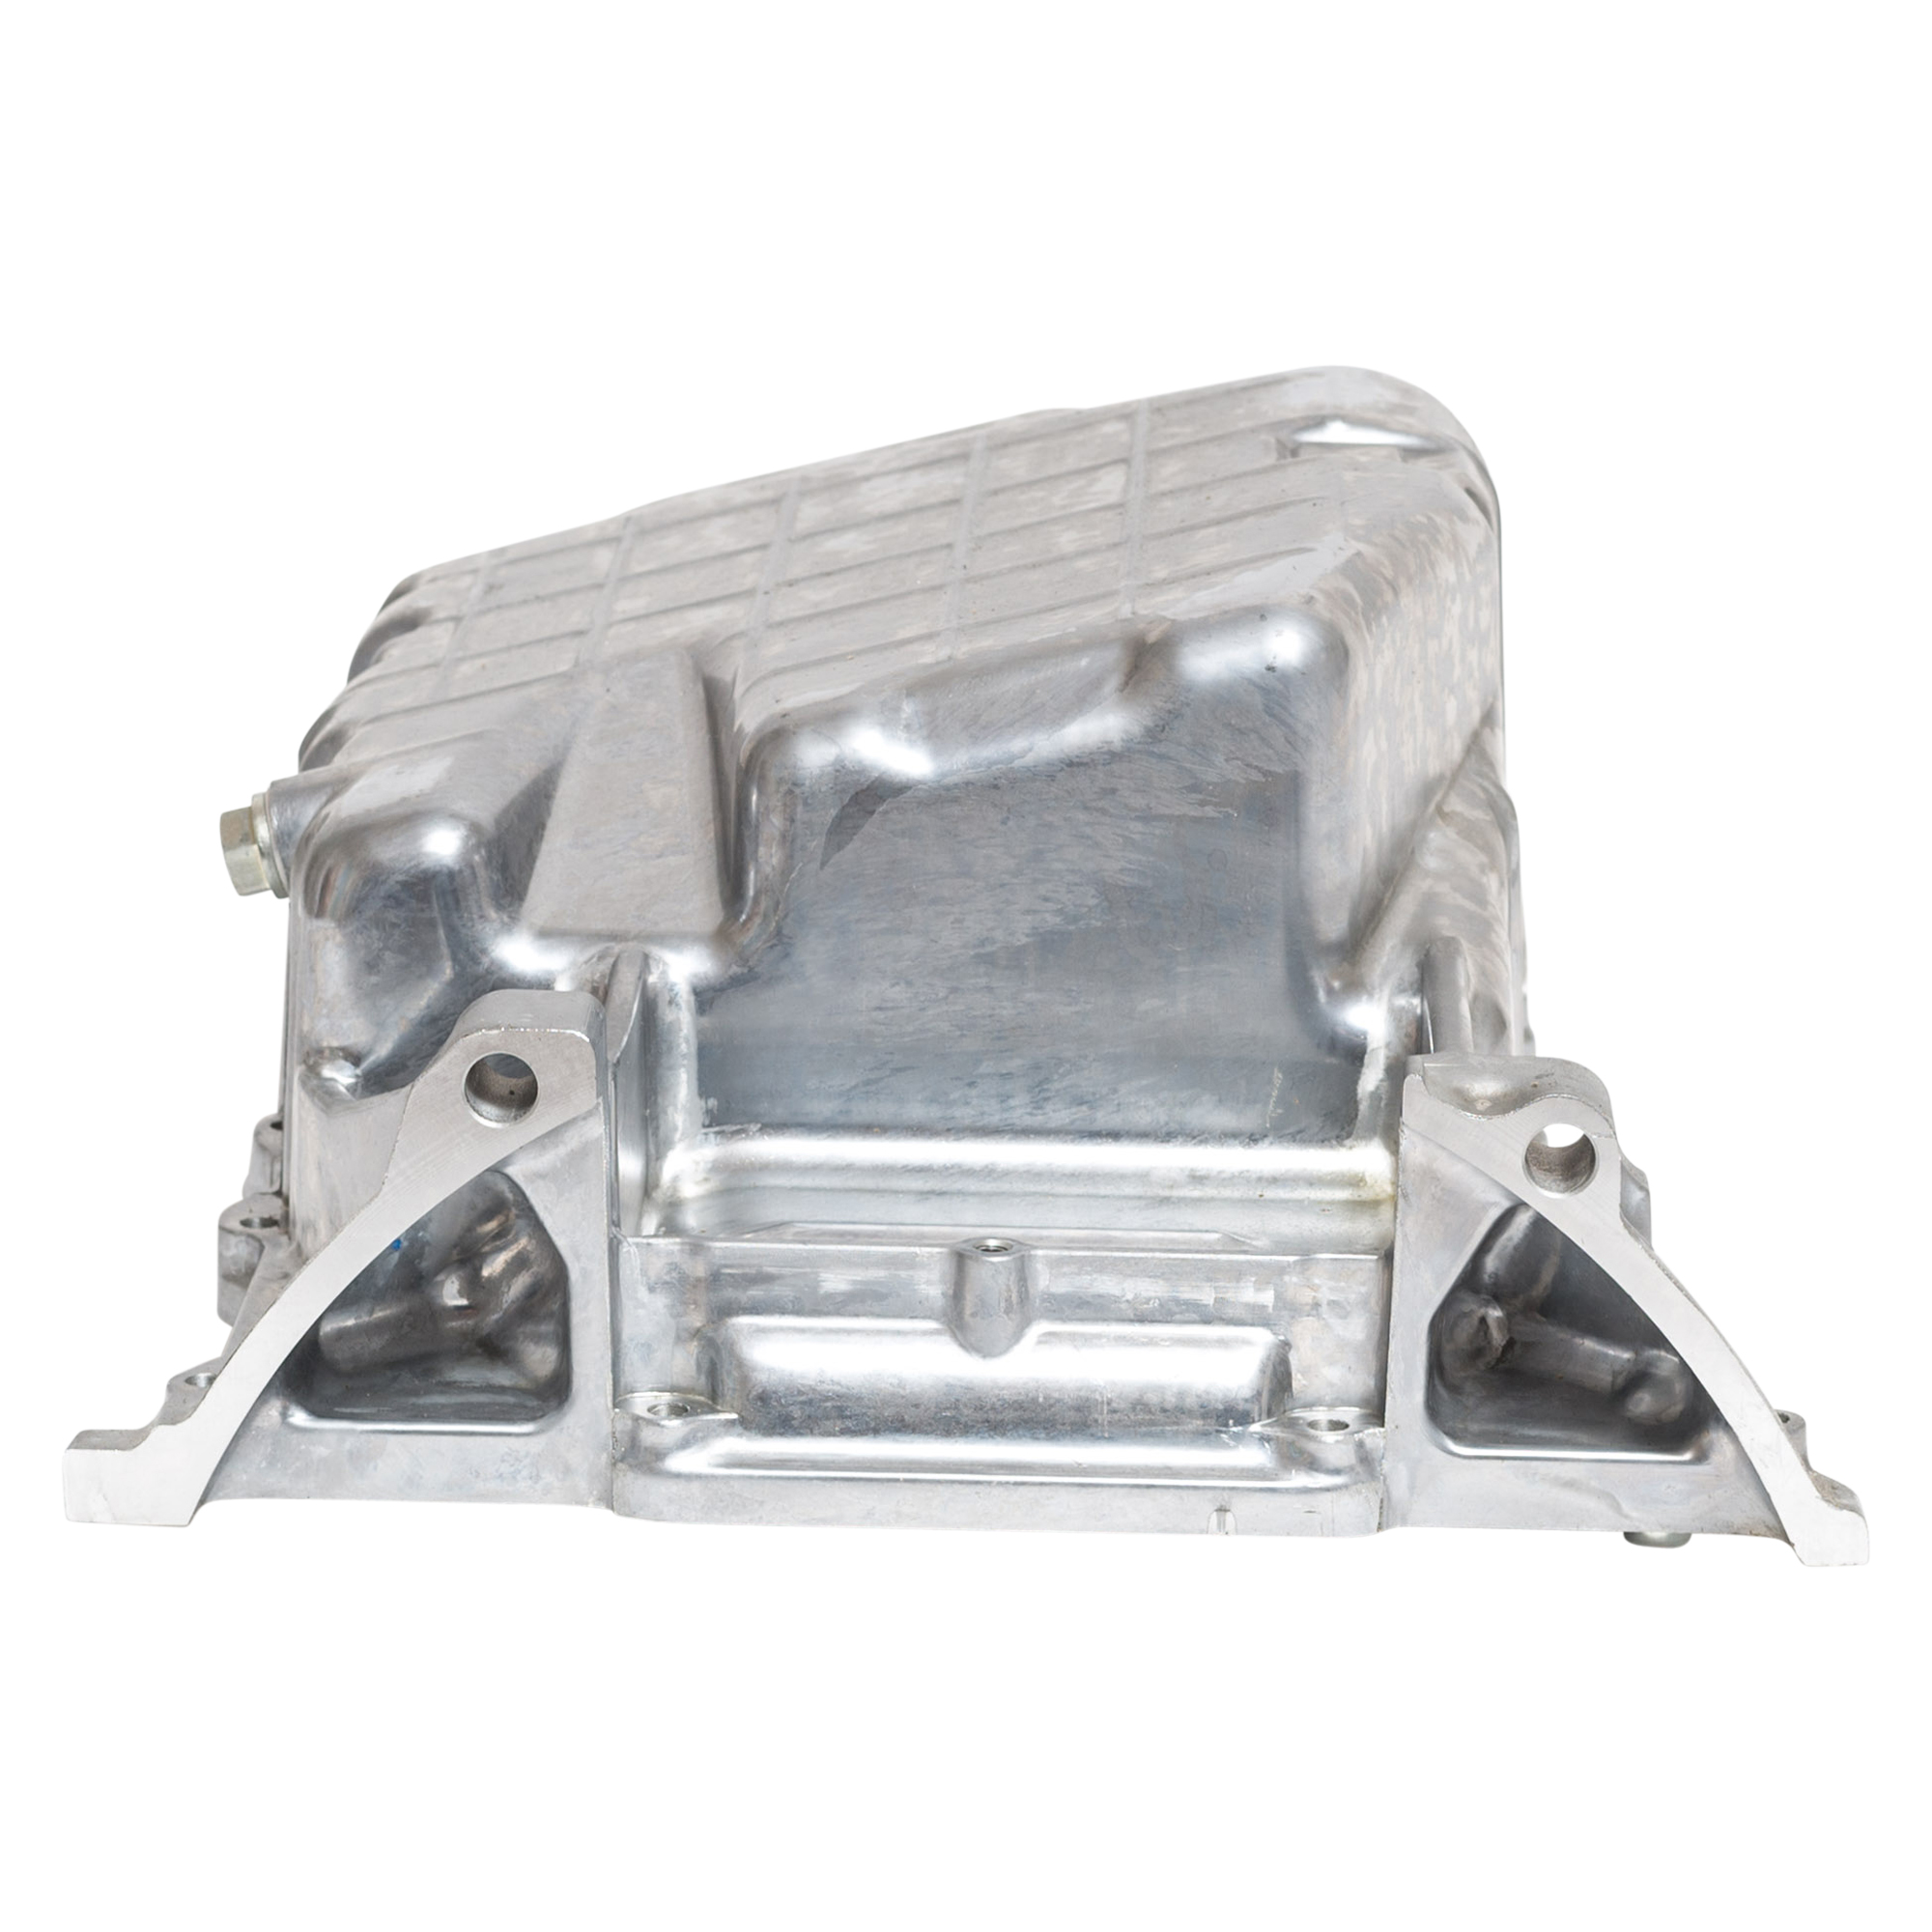 Engine Oil Pan For 2008-2015 Accord Crosstour Acura TSX 2